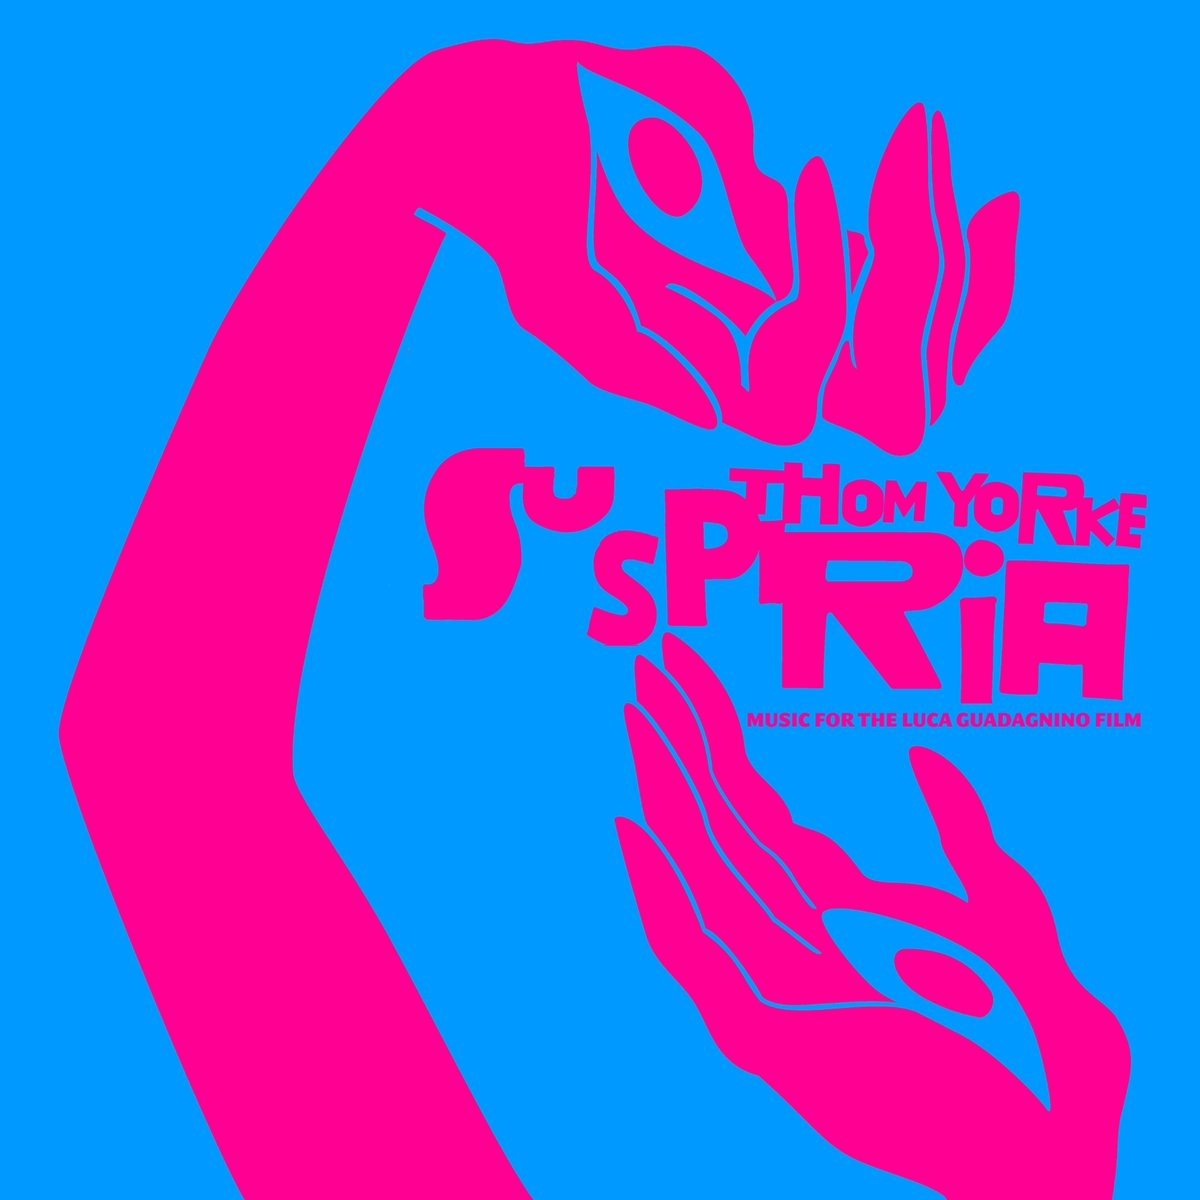 Album art for Thom Yorke's soundtrack for Lucas Guadagnino's 'Suspiria' (Image Credit: XL Recordings)